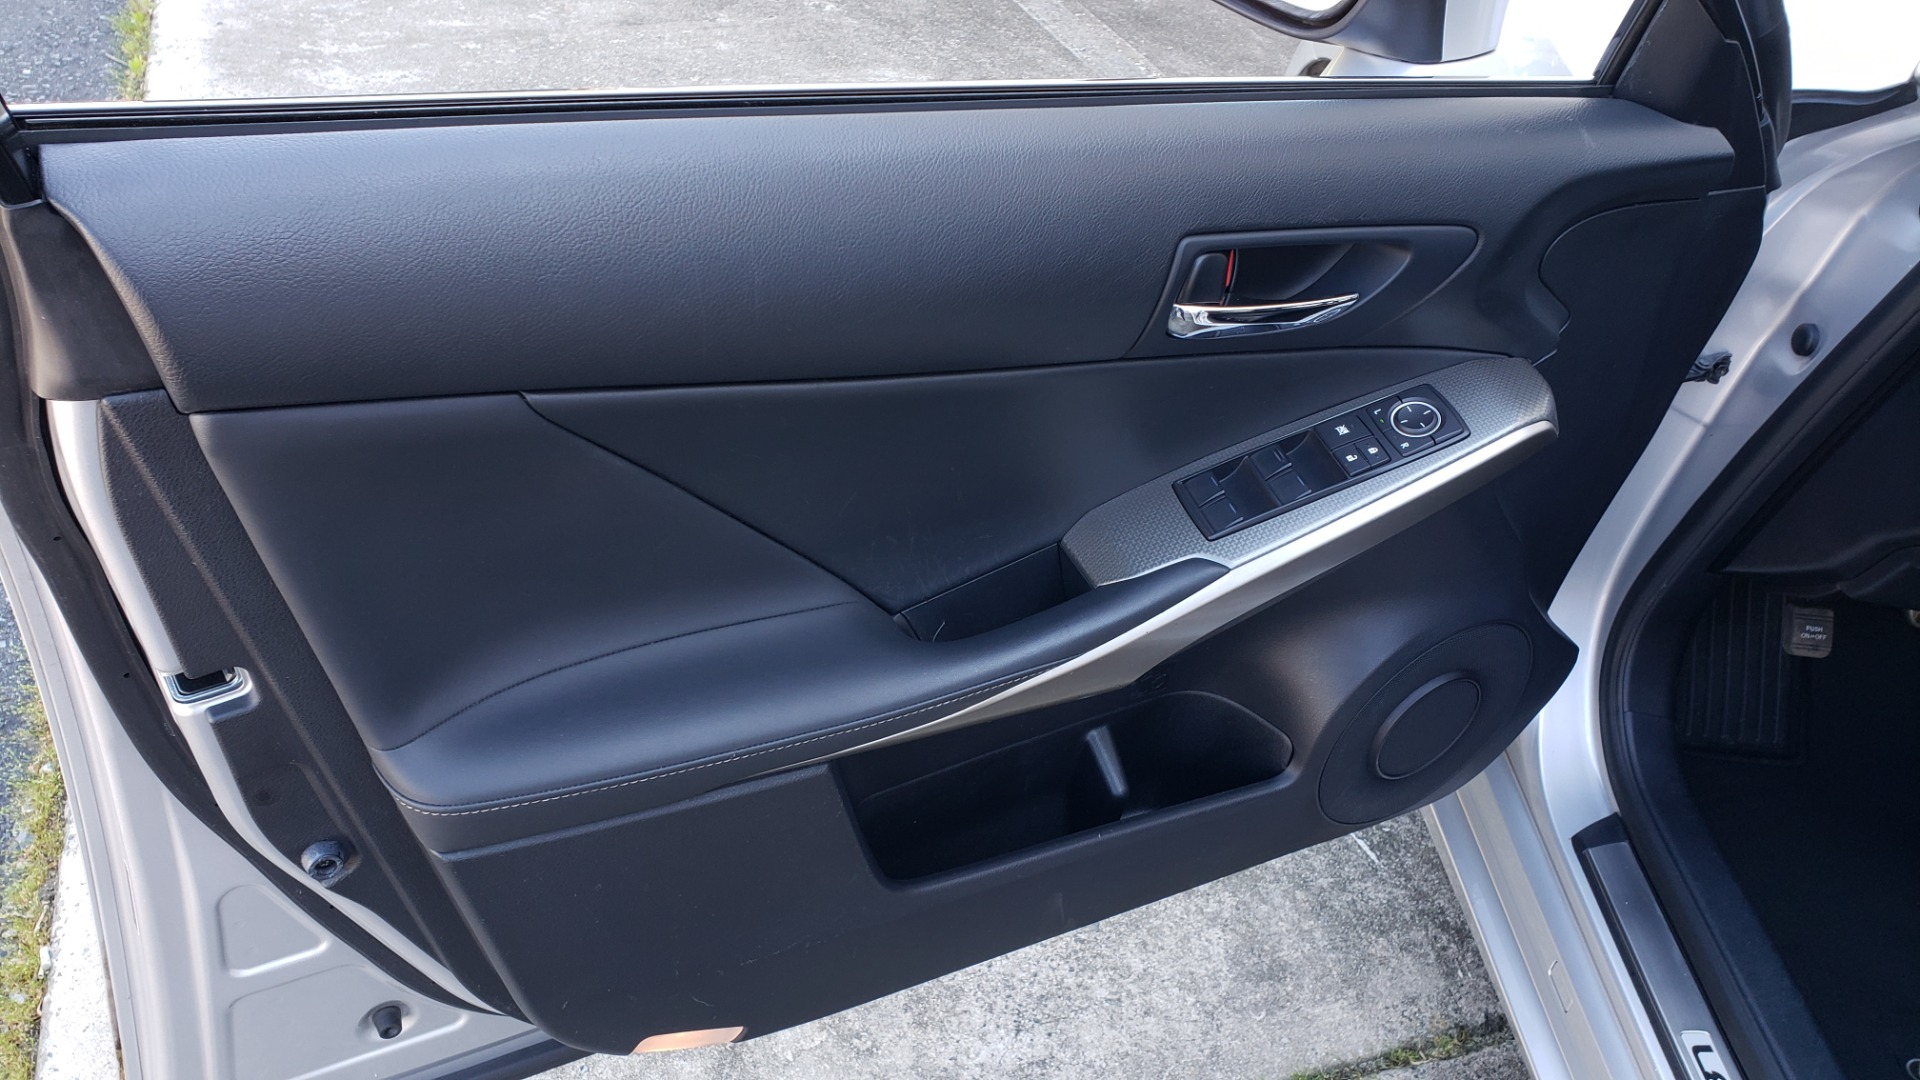 Used 2015 Lexus IS 250 F-SPORT / BSM / SUNROOF / VENT SEATS / REARVIEW for sale Sold at Formula Imports in Charlotte NC 28227 33